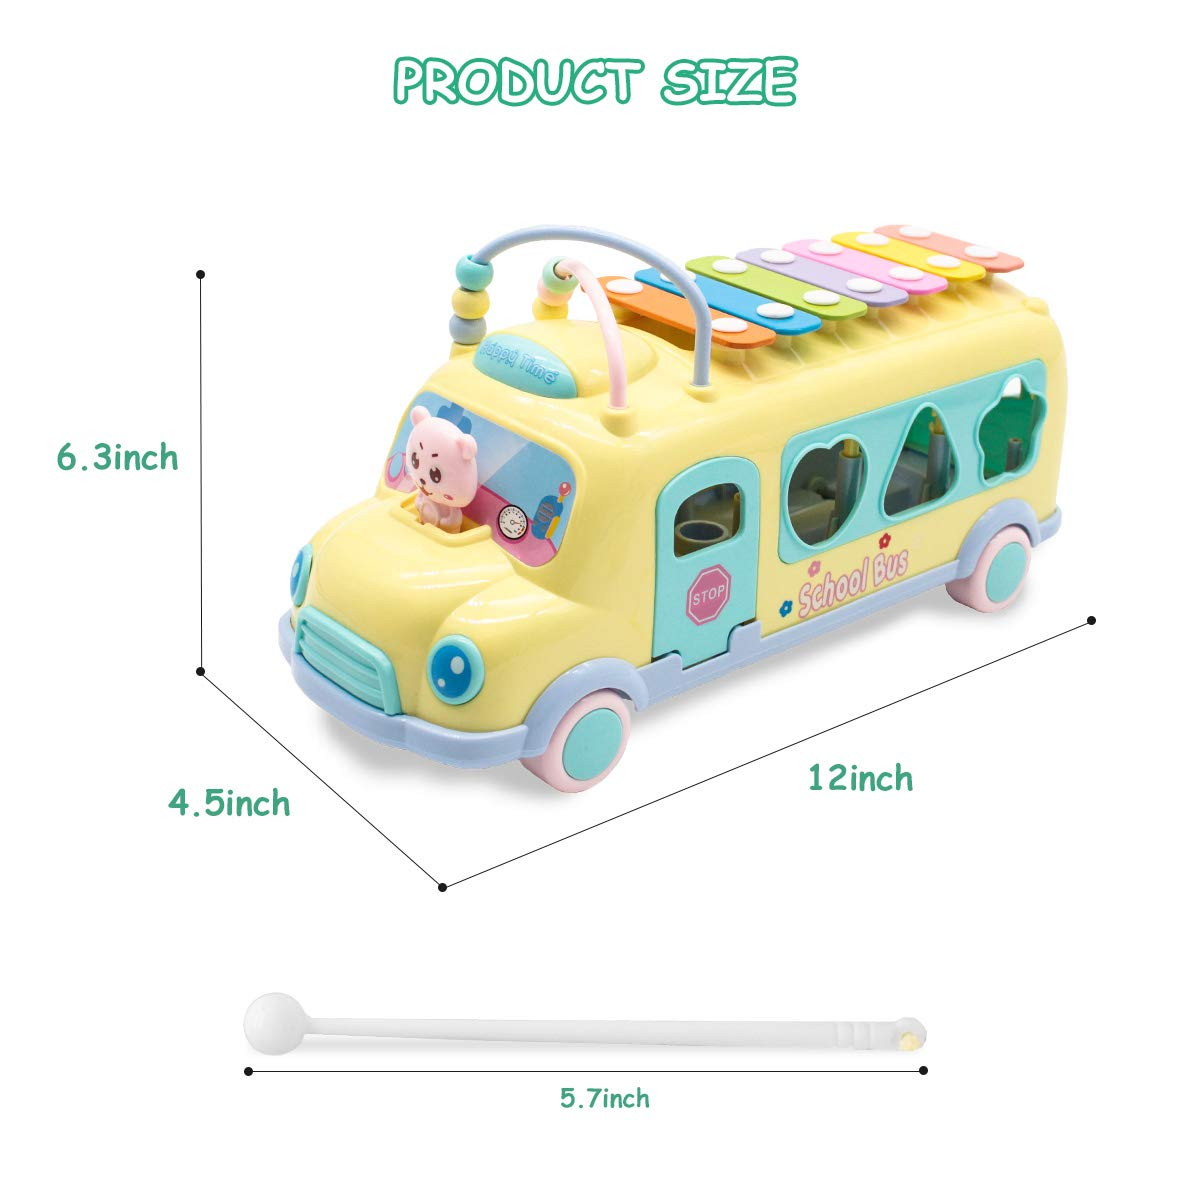 Shape Sorter Multifunctional Vehicles/for Baby Toddlers Kids Boys Girls Preschool 6 Alphabets Blocks Lydaz Pull Along School Bus Toy with Xylophone